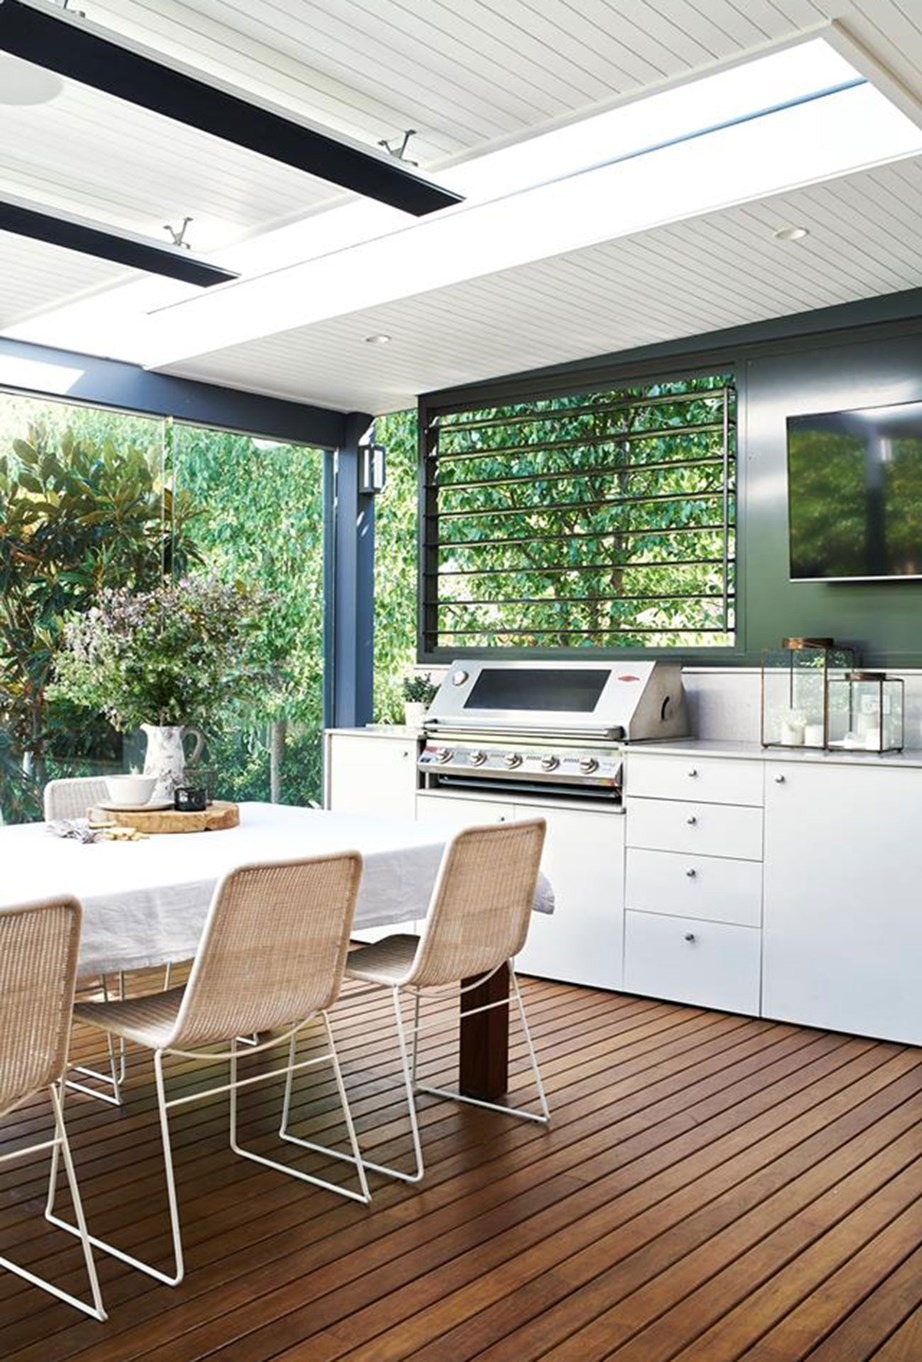 This outdoor kitchen and dining area is the perfect space for casual gatherings or seasonal celebrations.